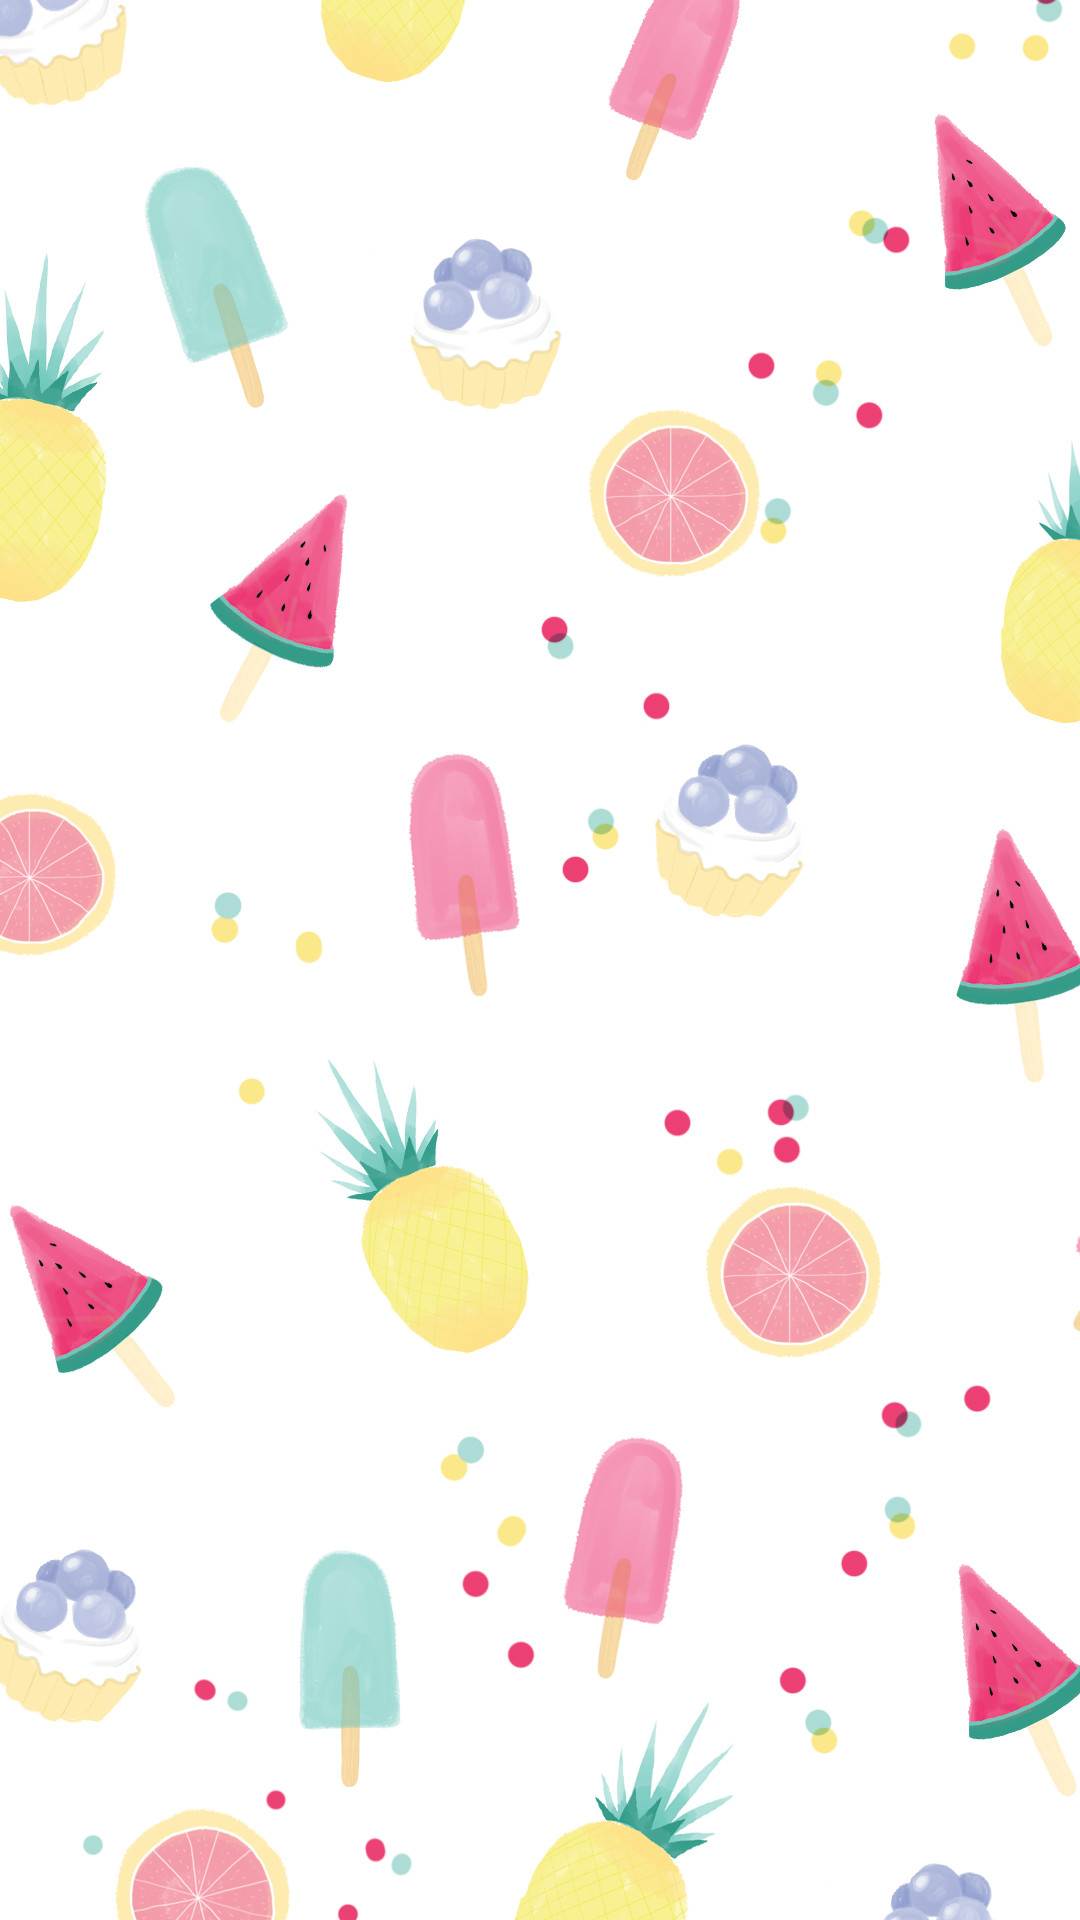 Fruit and ice lolly wallpaper